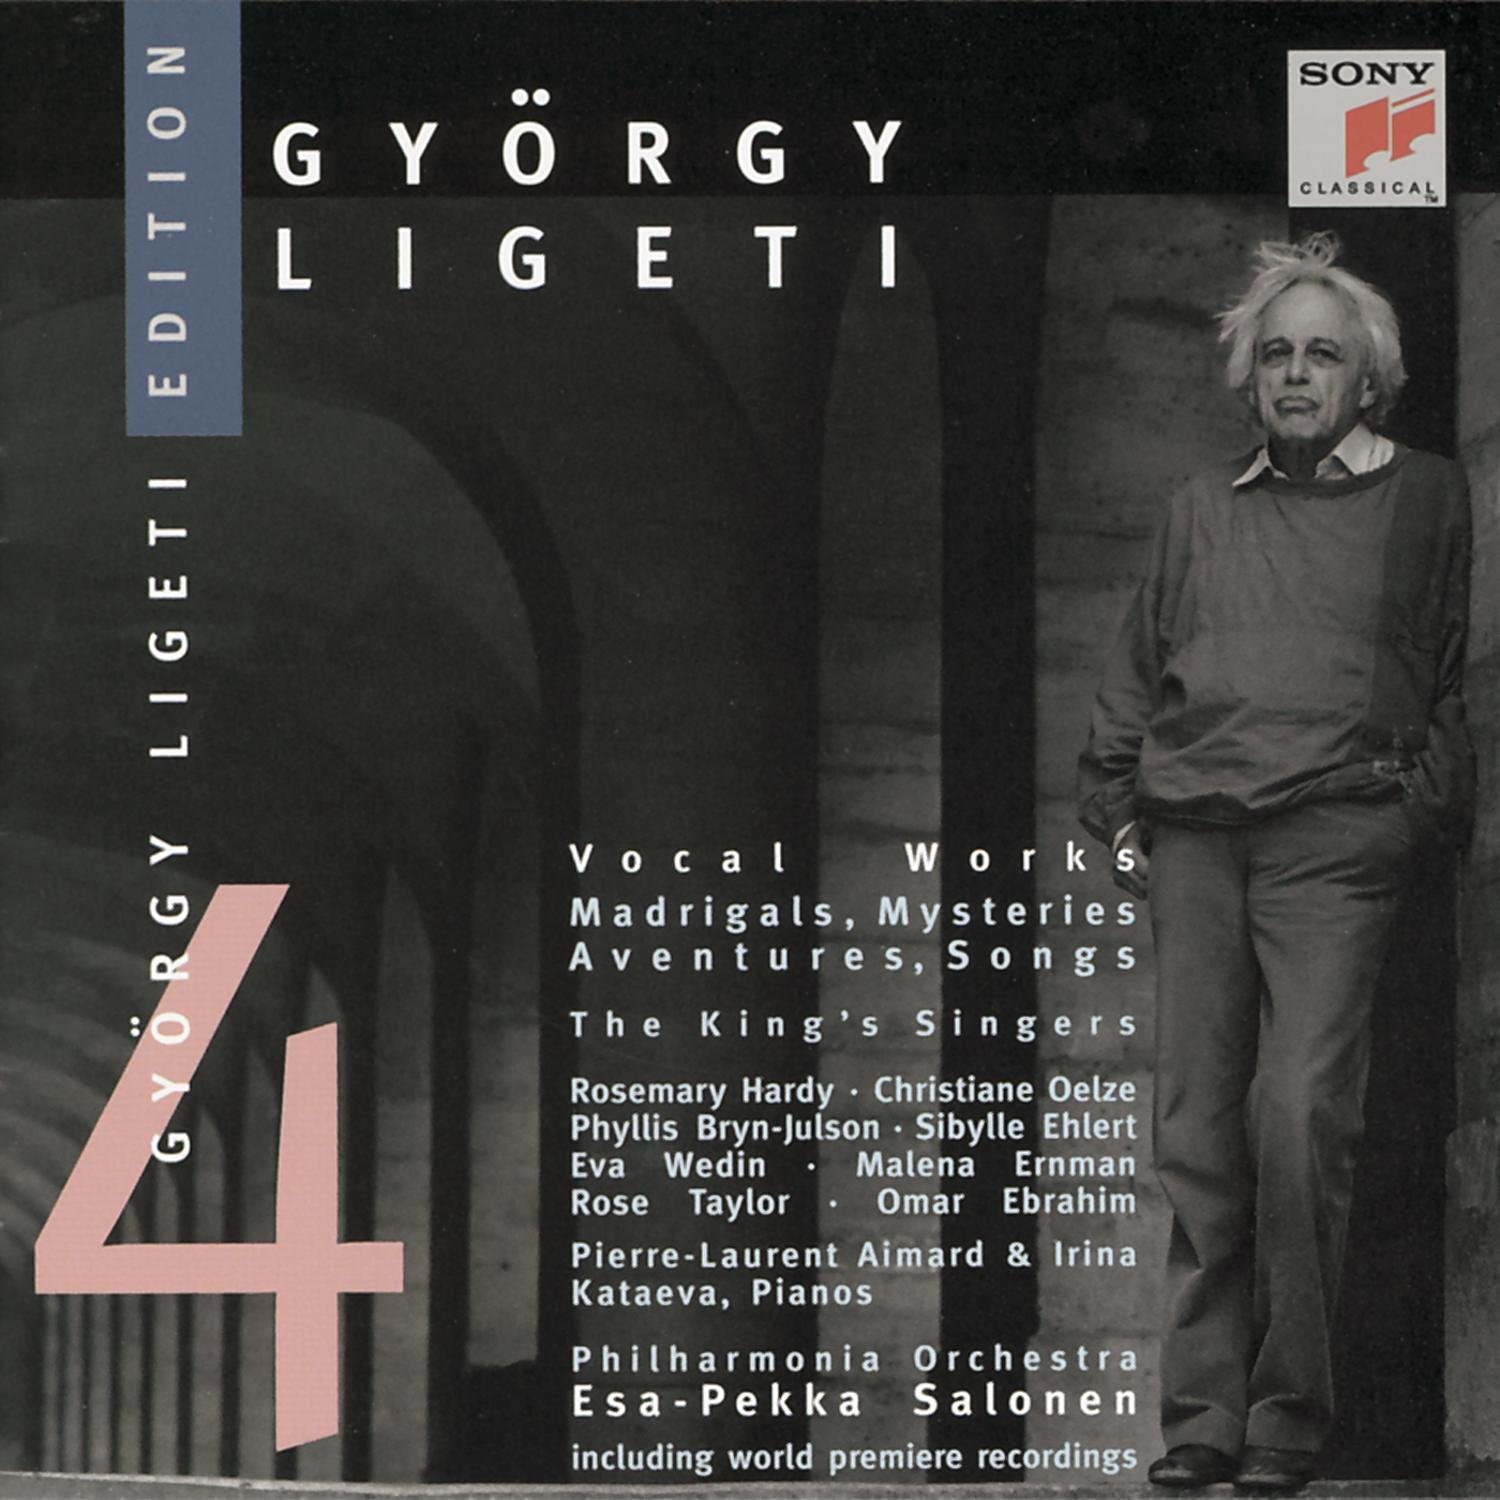 György Ligeti Edition 4: Vocal Works Madrigals, Mysteries, Aventures, Songs The King's Singers / Philharmonia Orchestra / Esa-Pekka Salonen